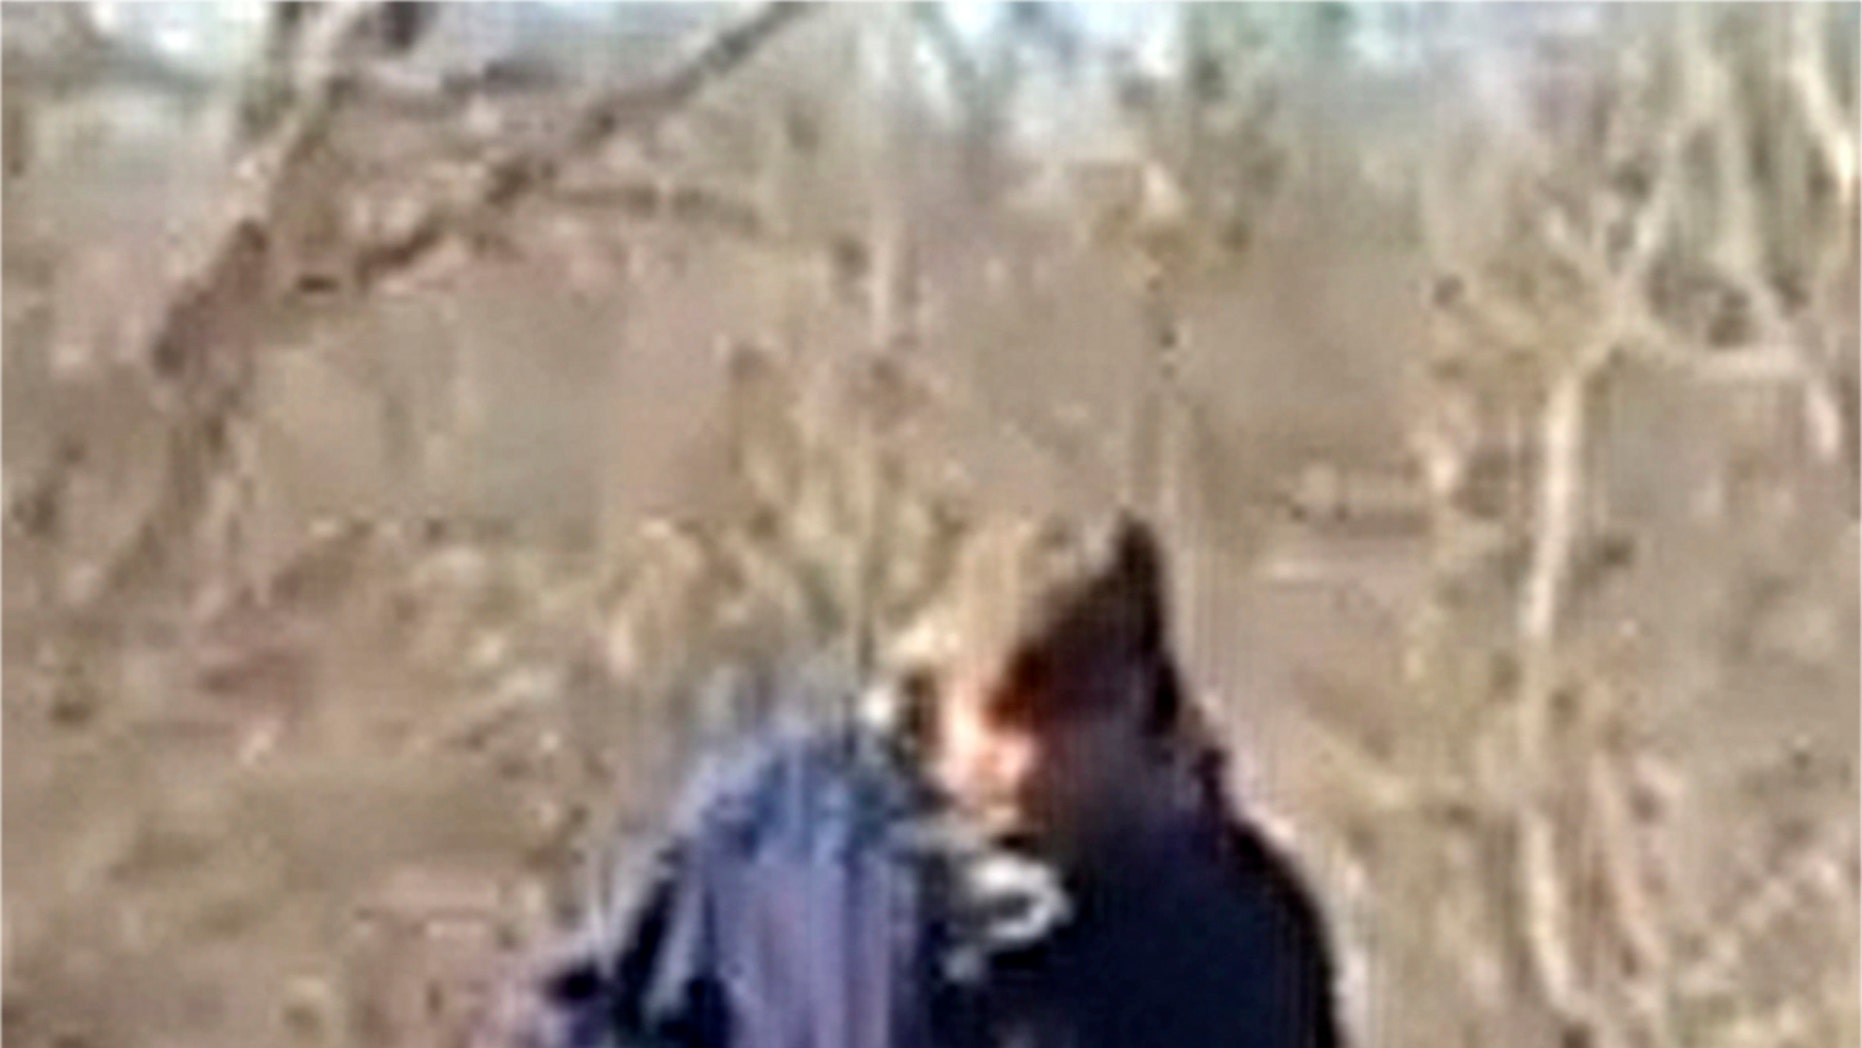 This Feb. 13, 2017, photo released by the Indiana State Police shows a man walking along the trail system in Delphi, Ind. Indiana authorities want to talk to the man in connection with the killings of two teenage girls.